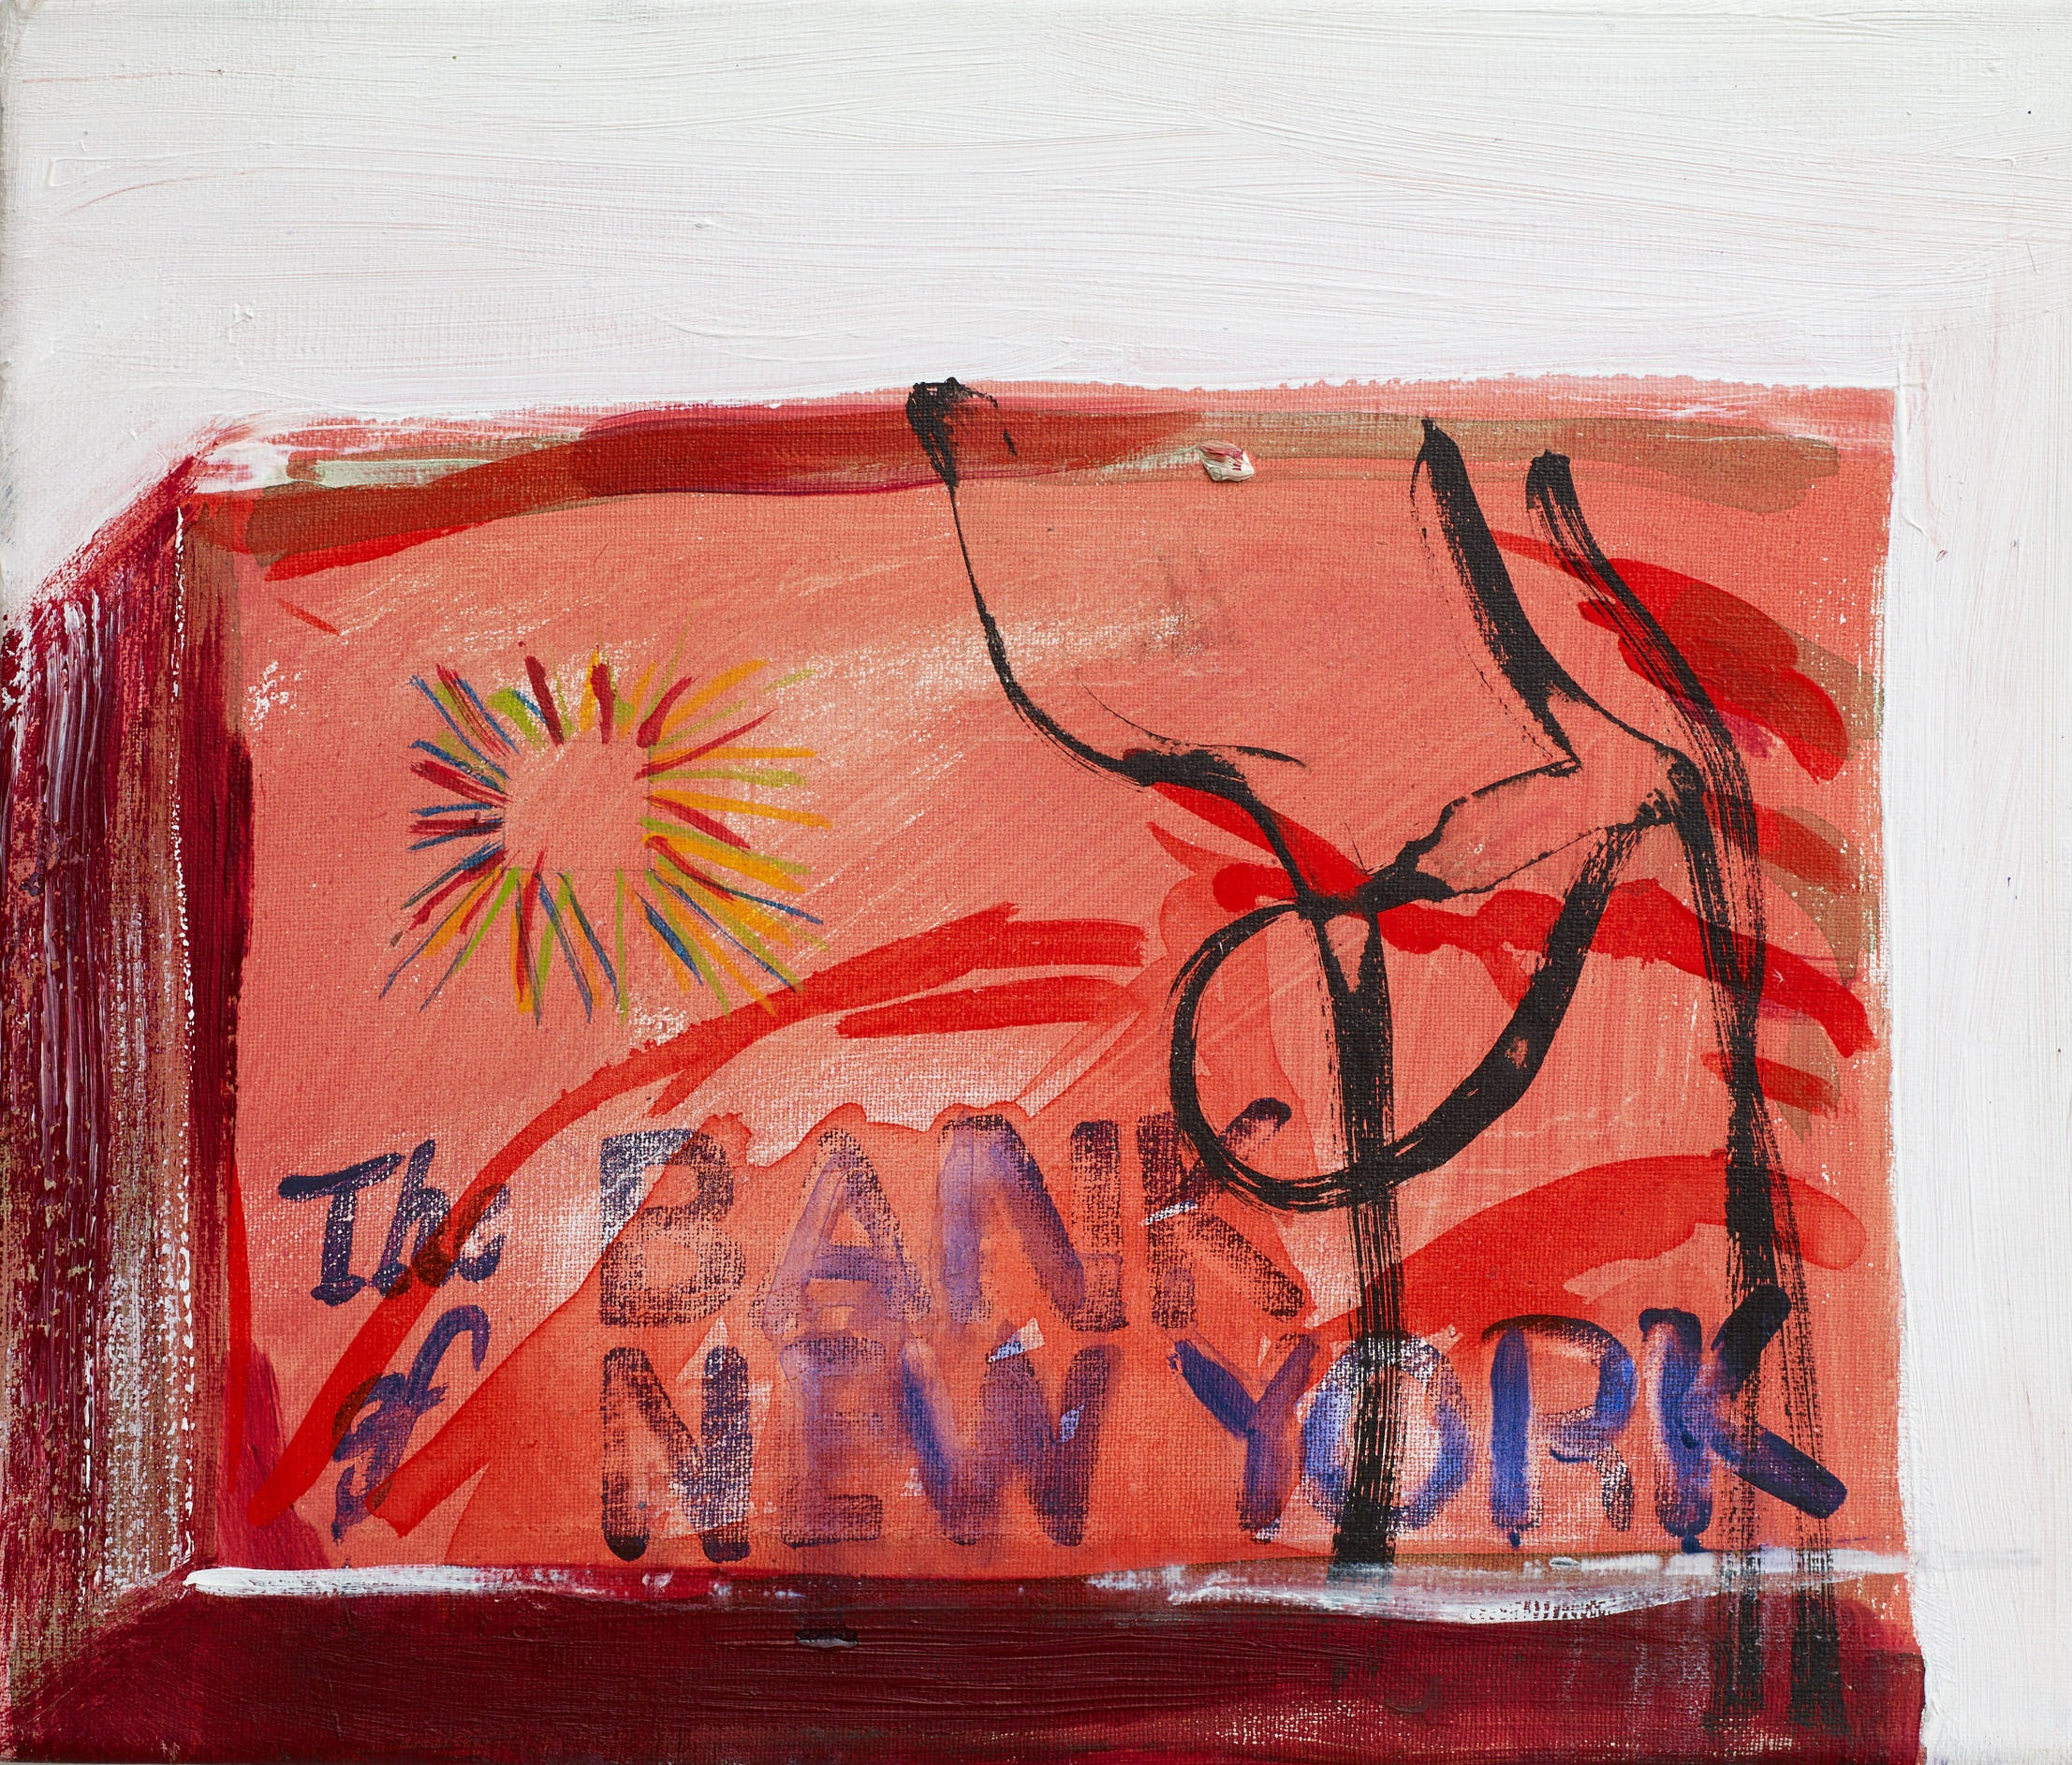 Brian Maguire  Cocaine Laundry Series, The Bank of New York , 2016 Acrylic on canvas 26 x 30 cm